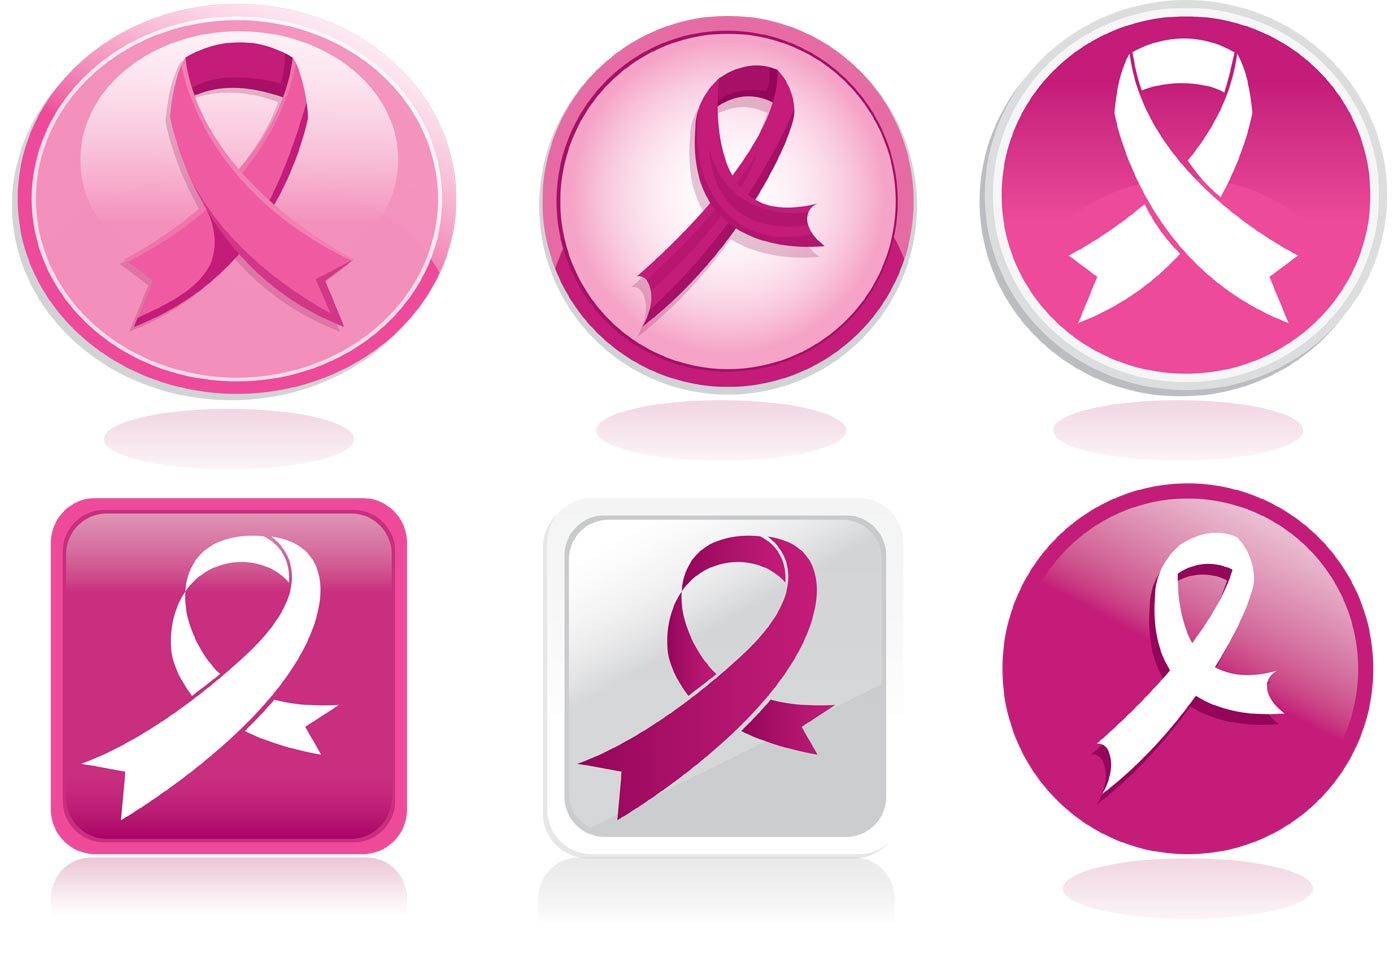 Breast cancer rbbon vector pack download free vector art stock breast cancer rbbon vector pack download free vector art stock graphics images buycottarizona Image collections